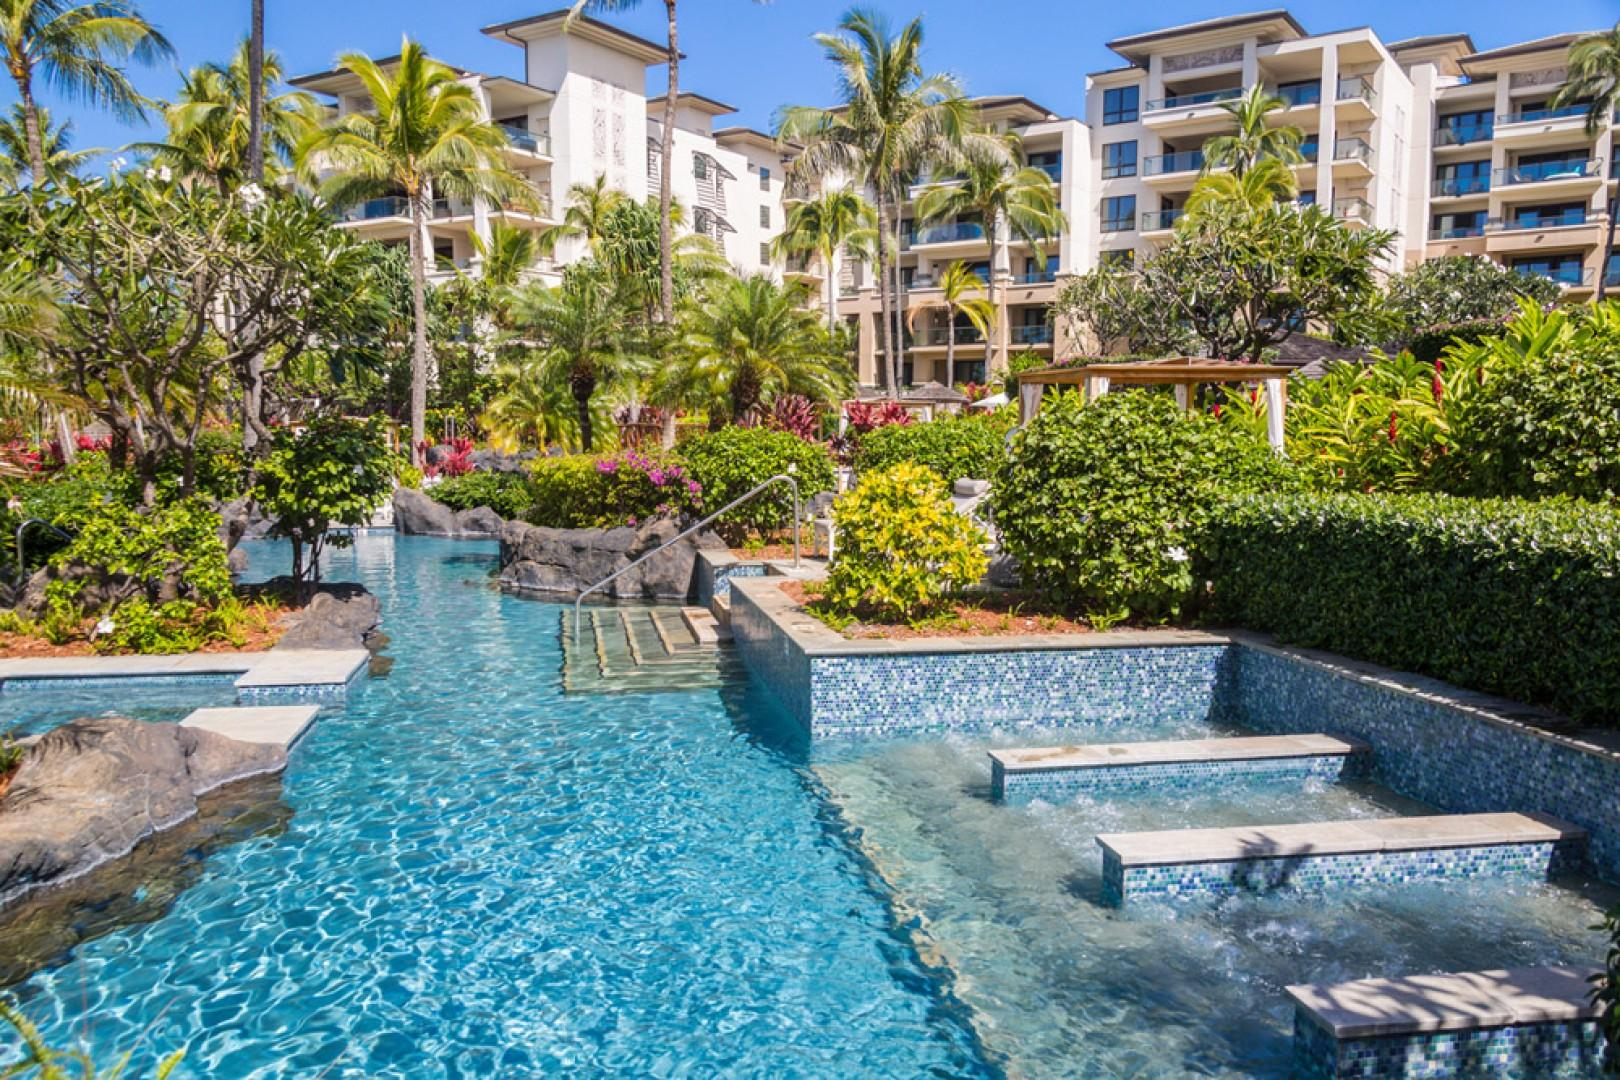 Soak in the Cool Water Bubble Baths and Find the Hidden Hot Tub Spas. Lounge in a Tropical Oasis.